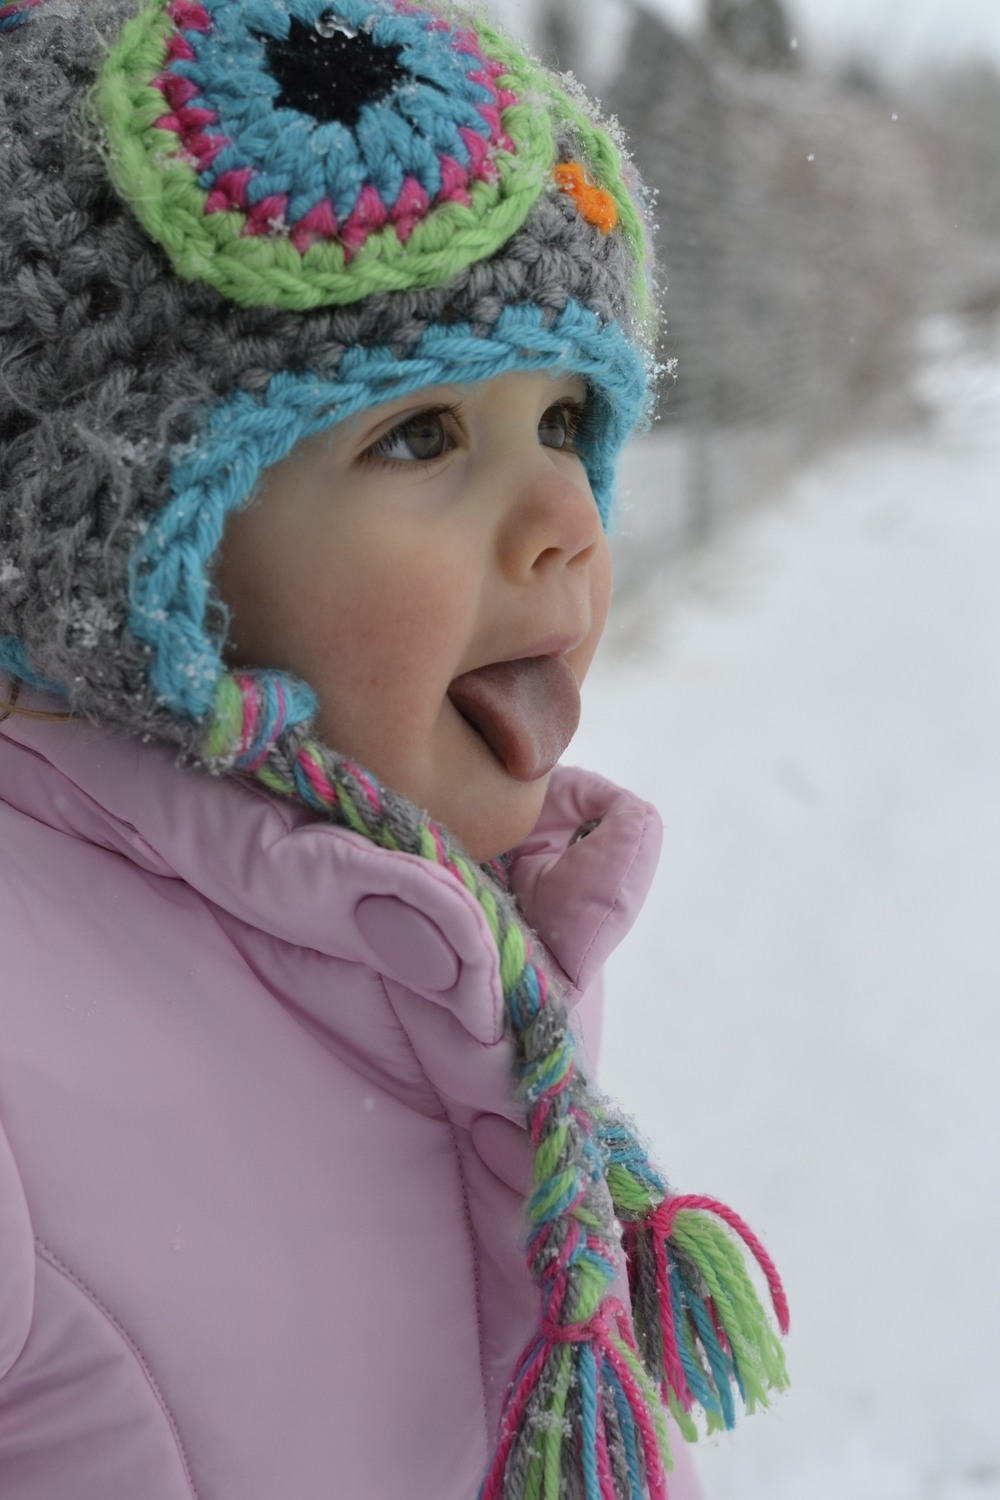 catching snowflakes